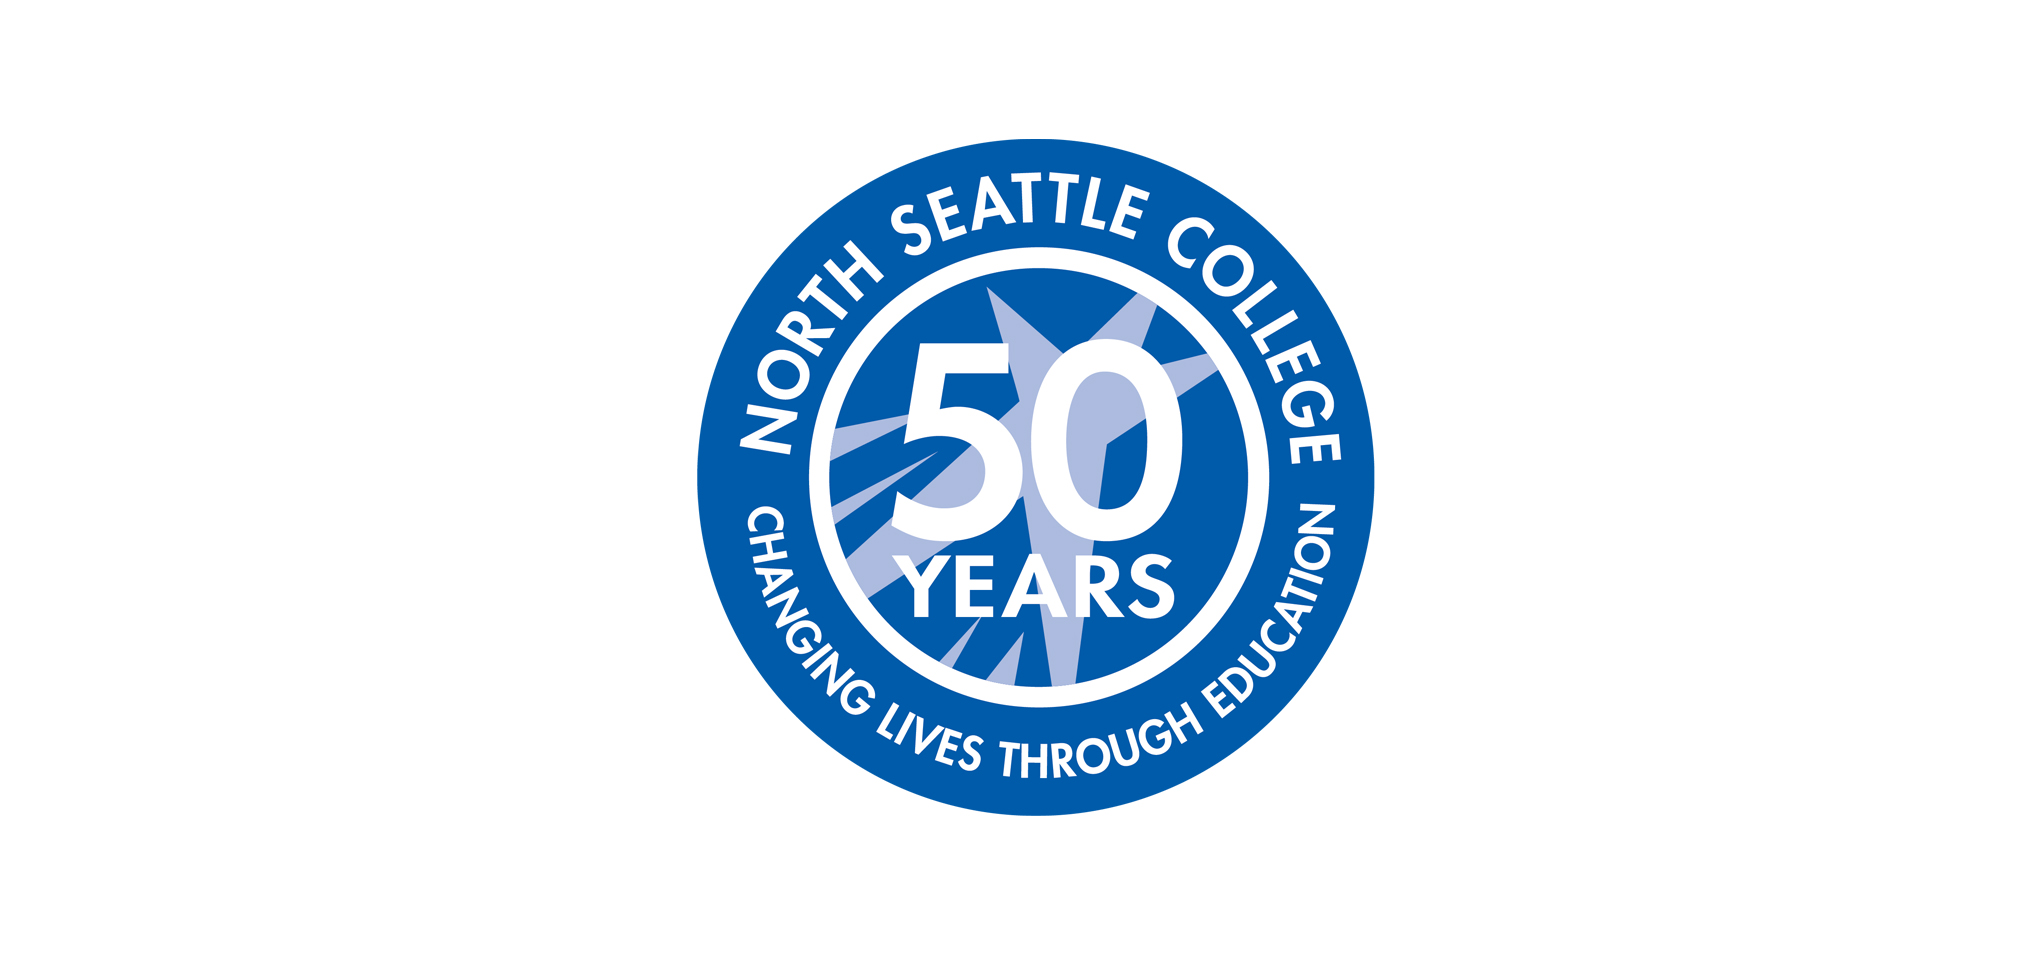 50th Anniversary Changing Lives Through Education logo